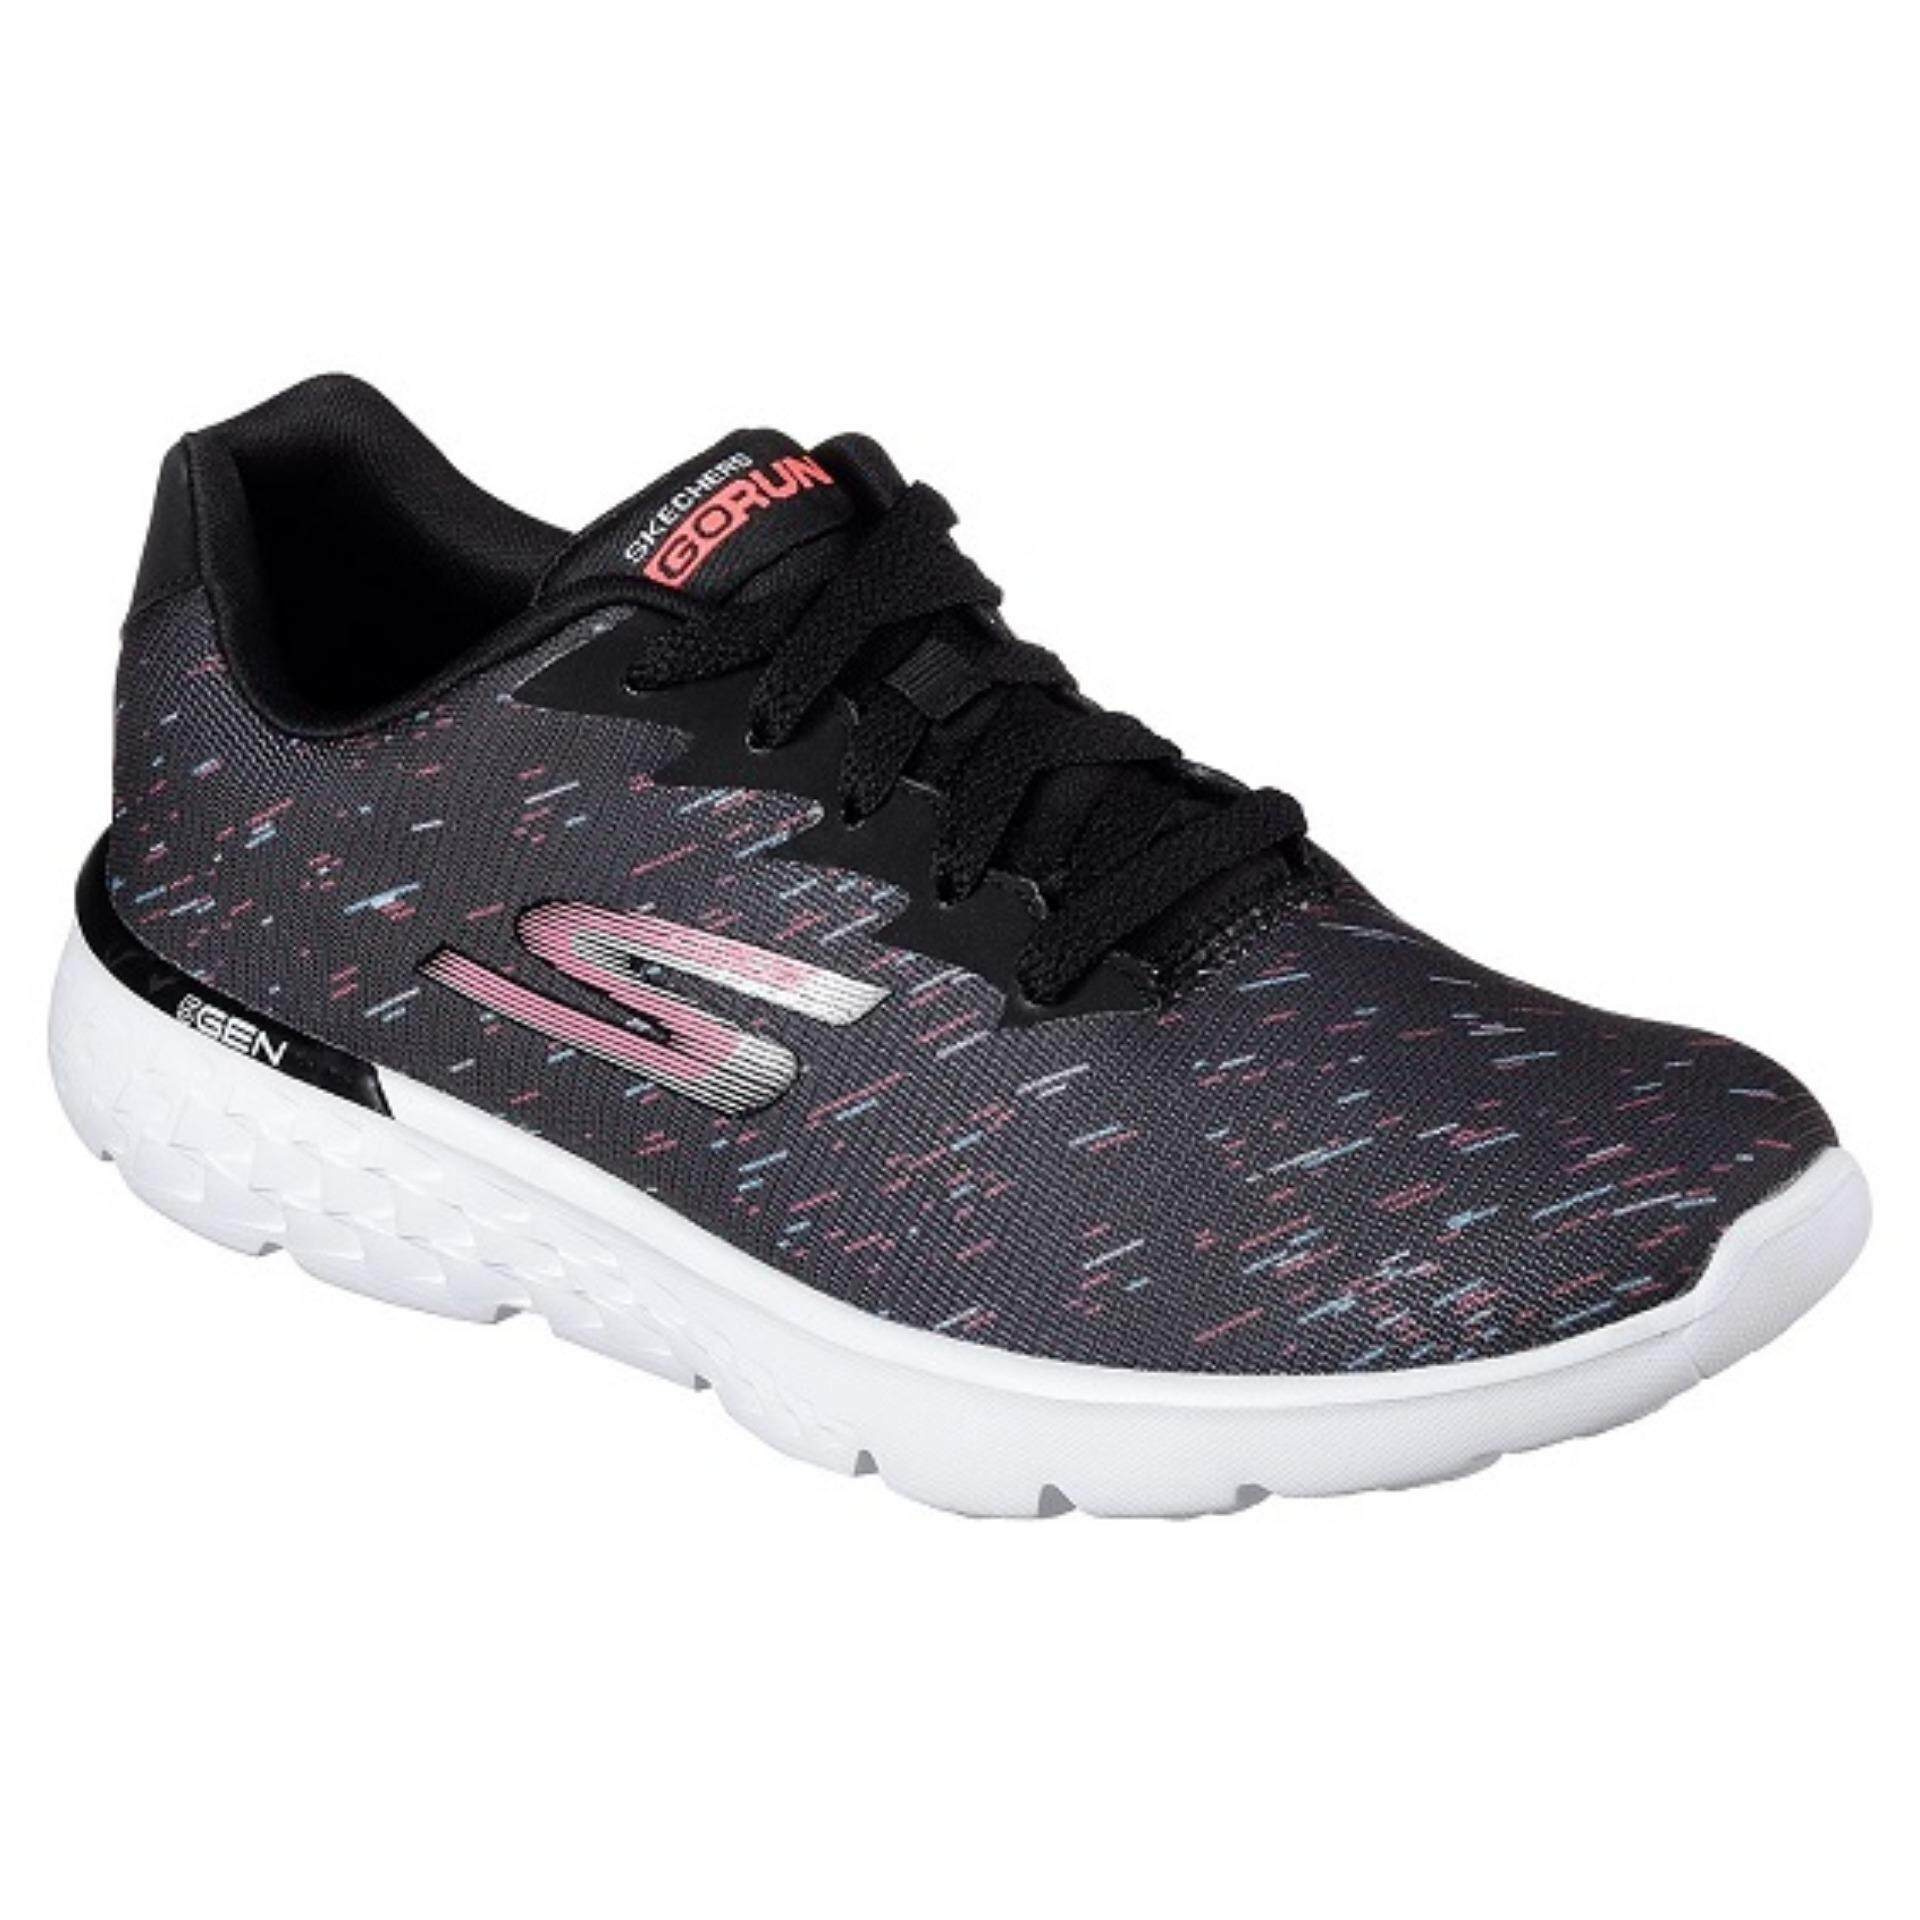 Skechers Malaysia Women s Sports Shoes price in Malaysia - Best ... 007d0ebf47